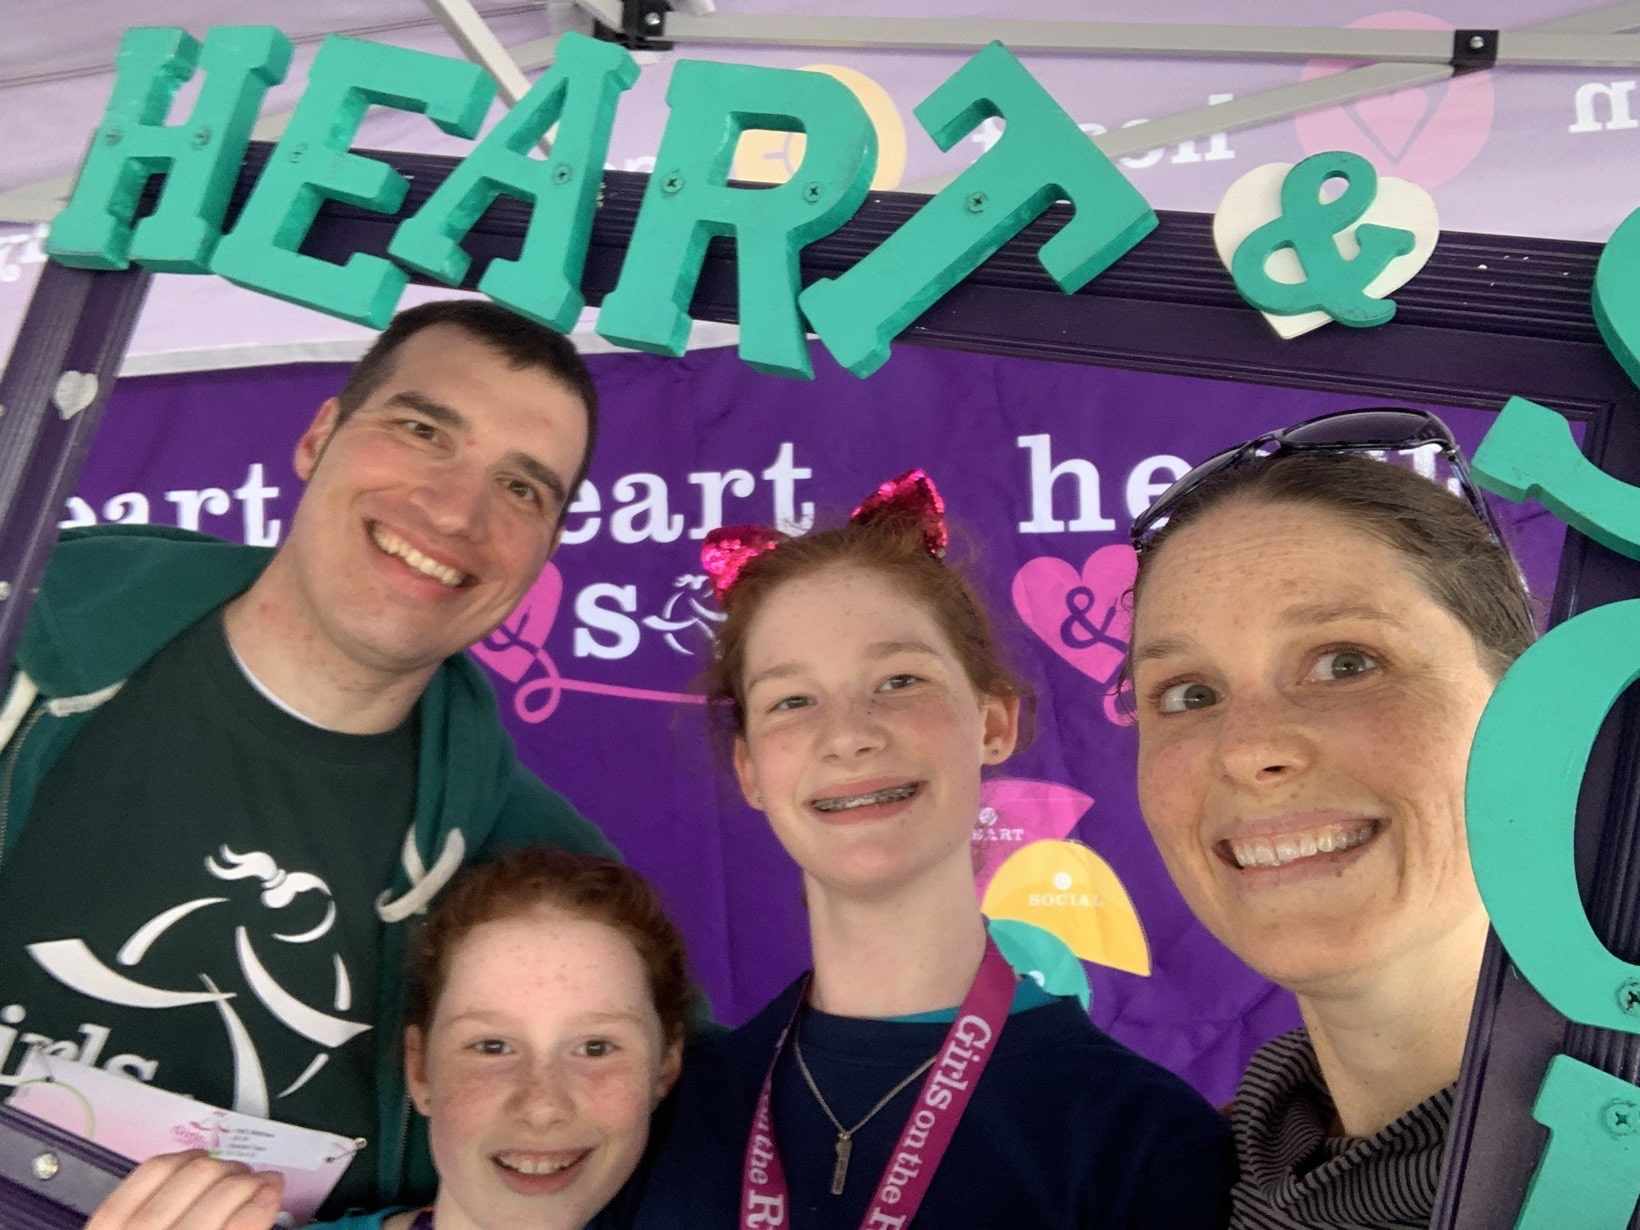 Finished with GOTR 5K